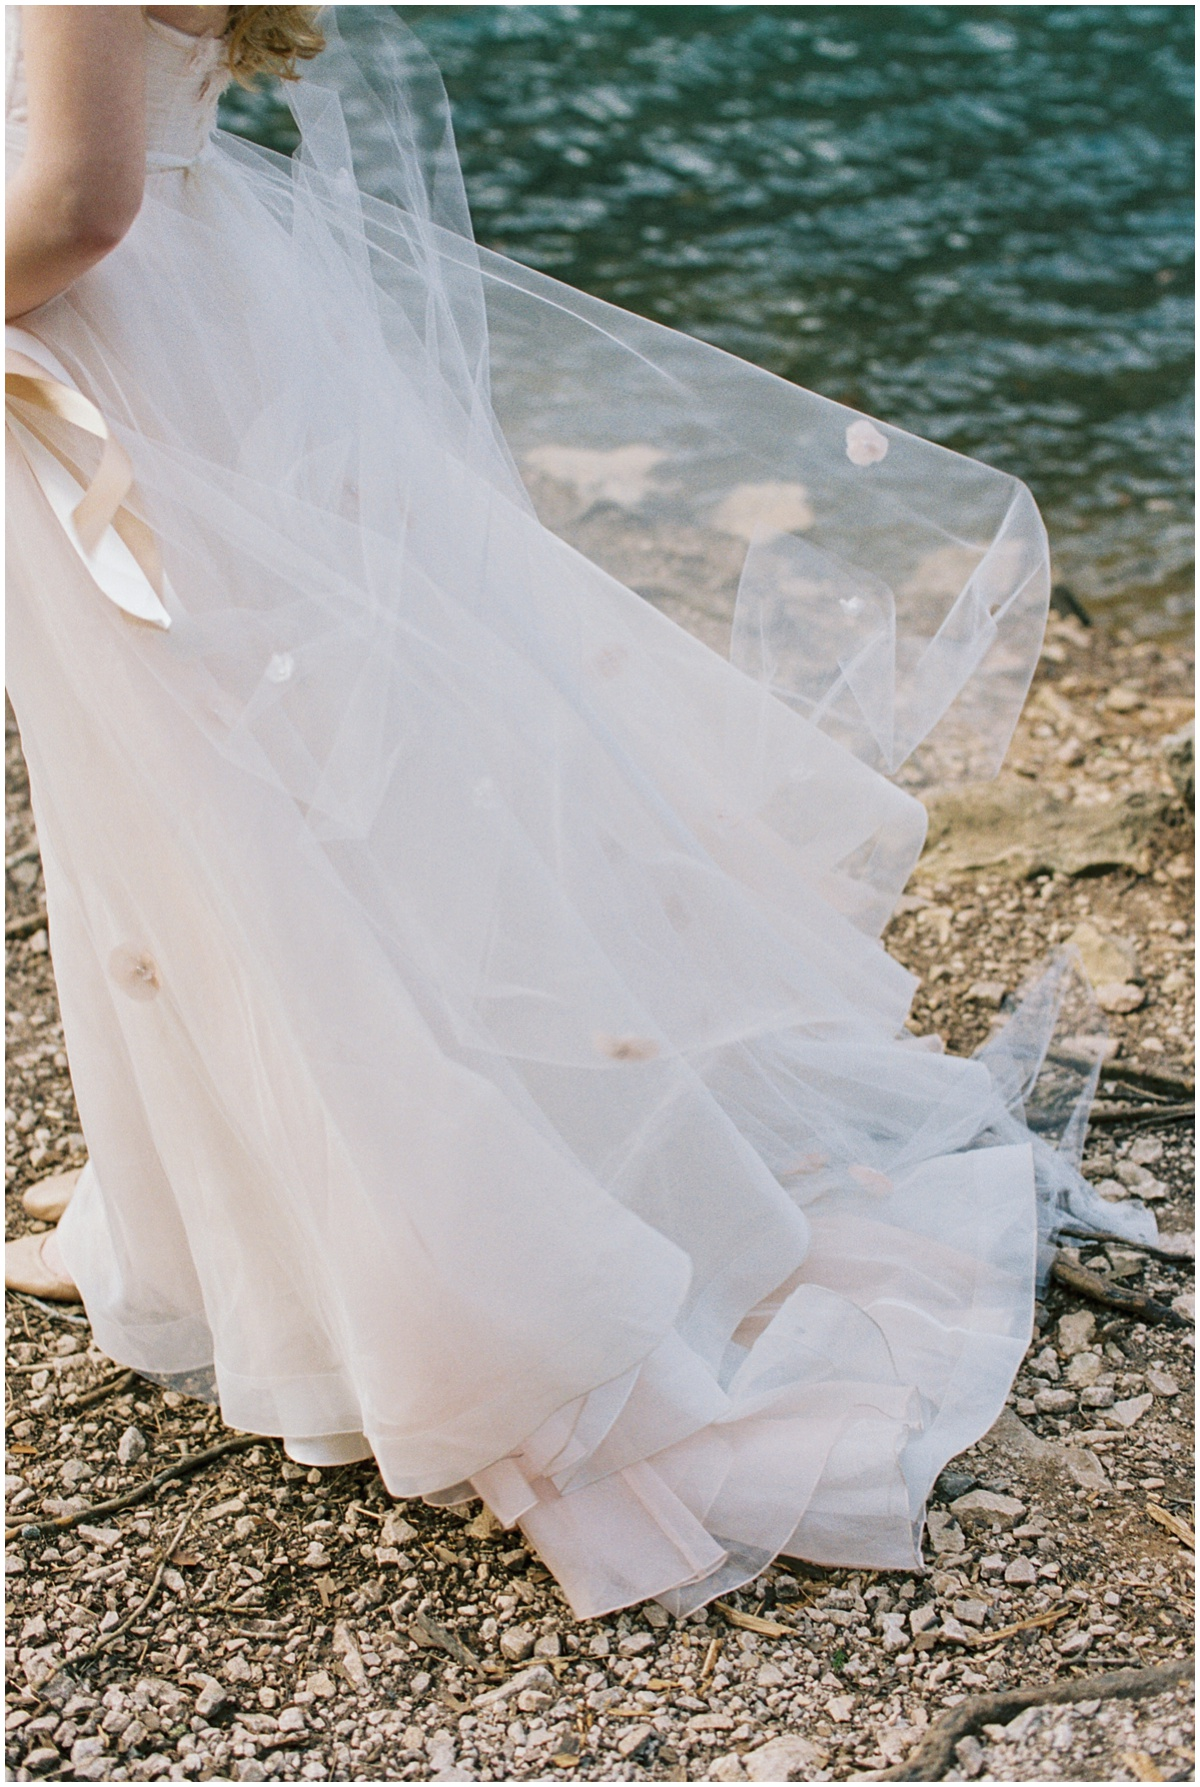 Abigail_Malone_Film_Wedding_Photography_KNoxville_TN_Blush_Dress_Outdoor_Windy_Pink_and_Green_Wedding_0010.jpg